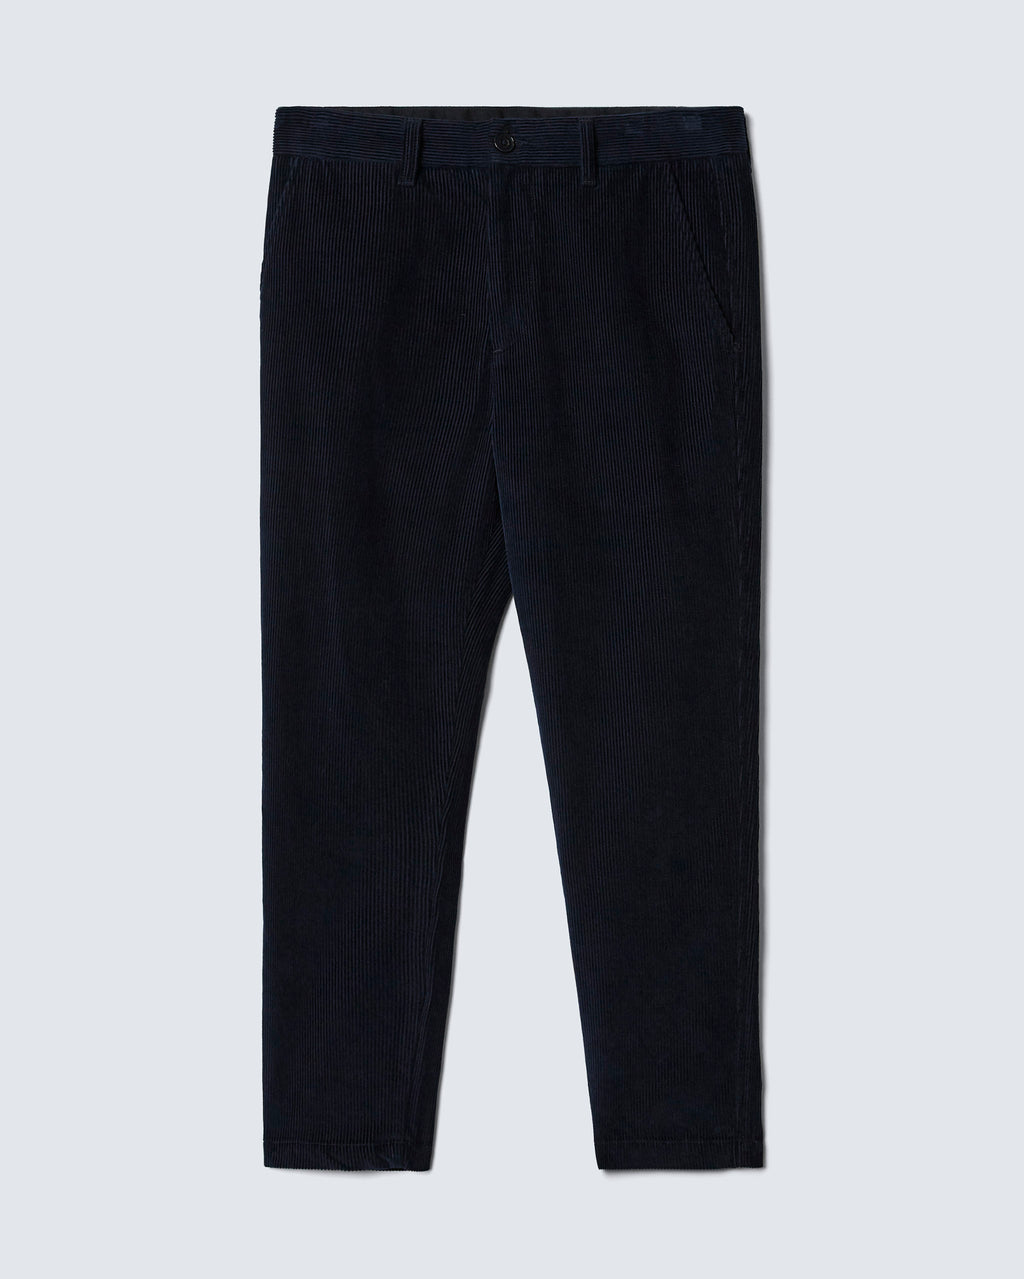 The Augi Pant In Navy